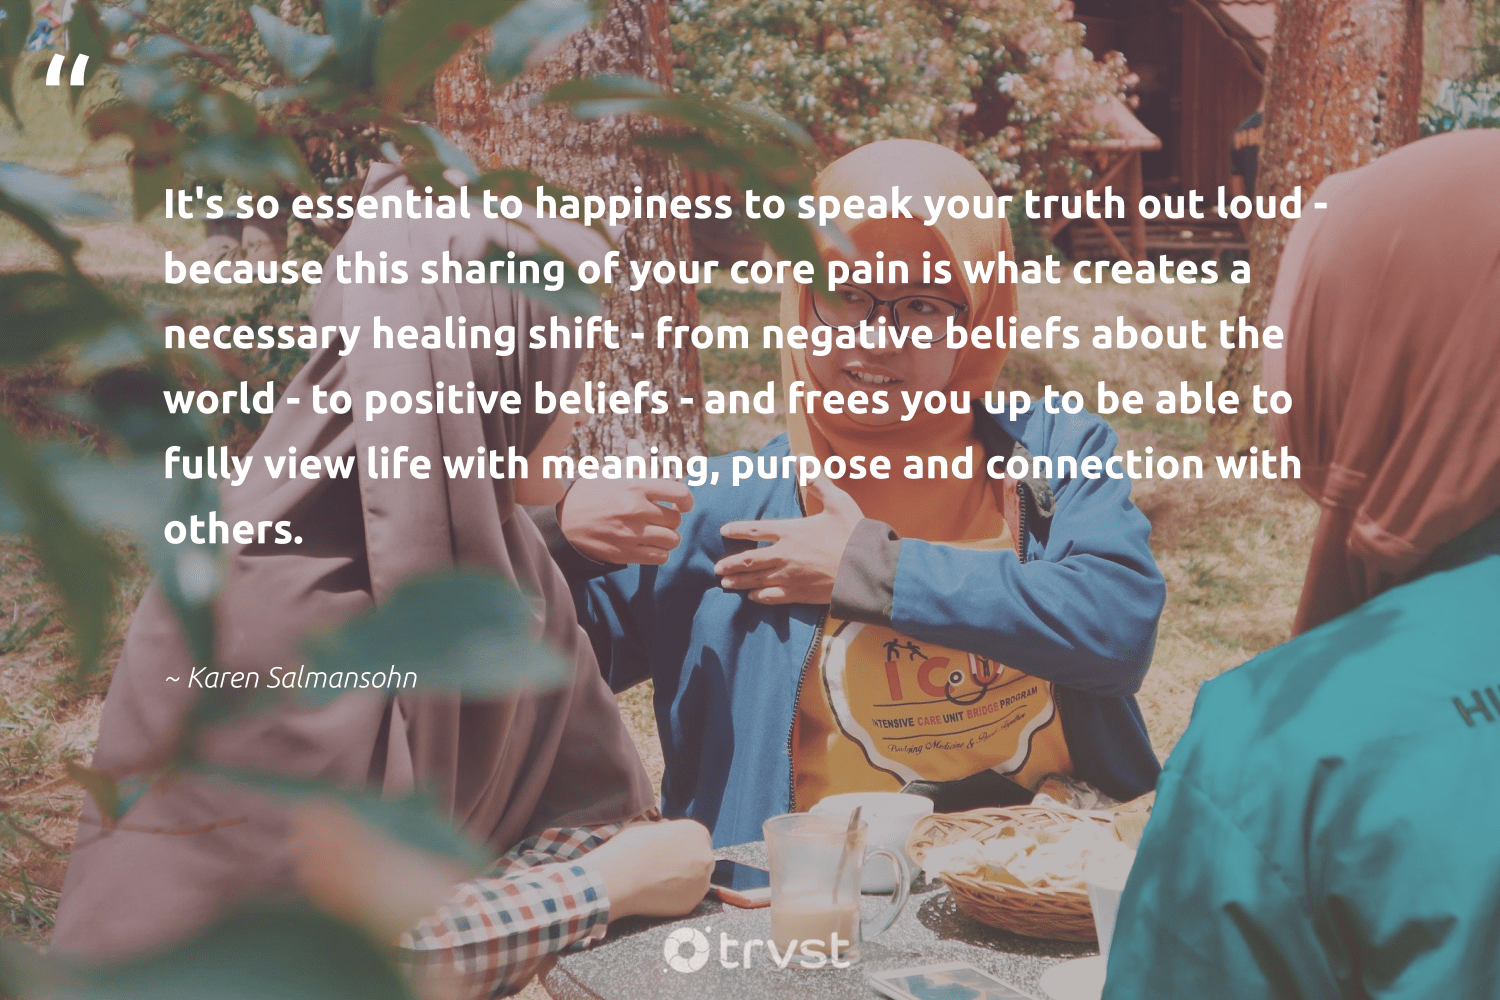 """""""It's so essential to happiness to speak your truth out loud - because this sharing of your core pain is what creates a necessary healing shift - from negative beliefs about the world - to positive beliefs - and frees you up to be able to fully view life with meaning, purpose and connection with others.""""  - Karen Salmansohn #trvst #quotes #purpose #healing #happiness #truth #findpurpose #health #begreat #bethechange #findingpupose #mindset"""